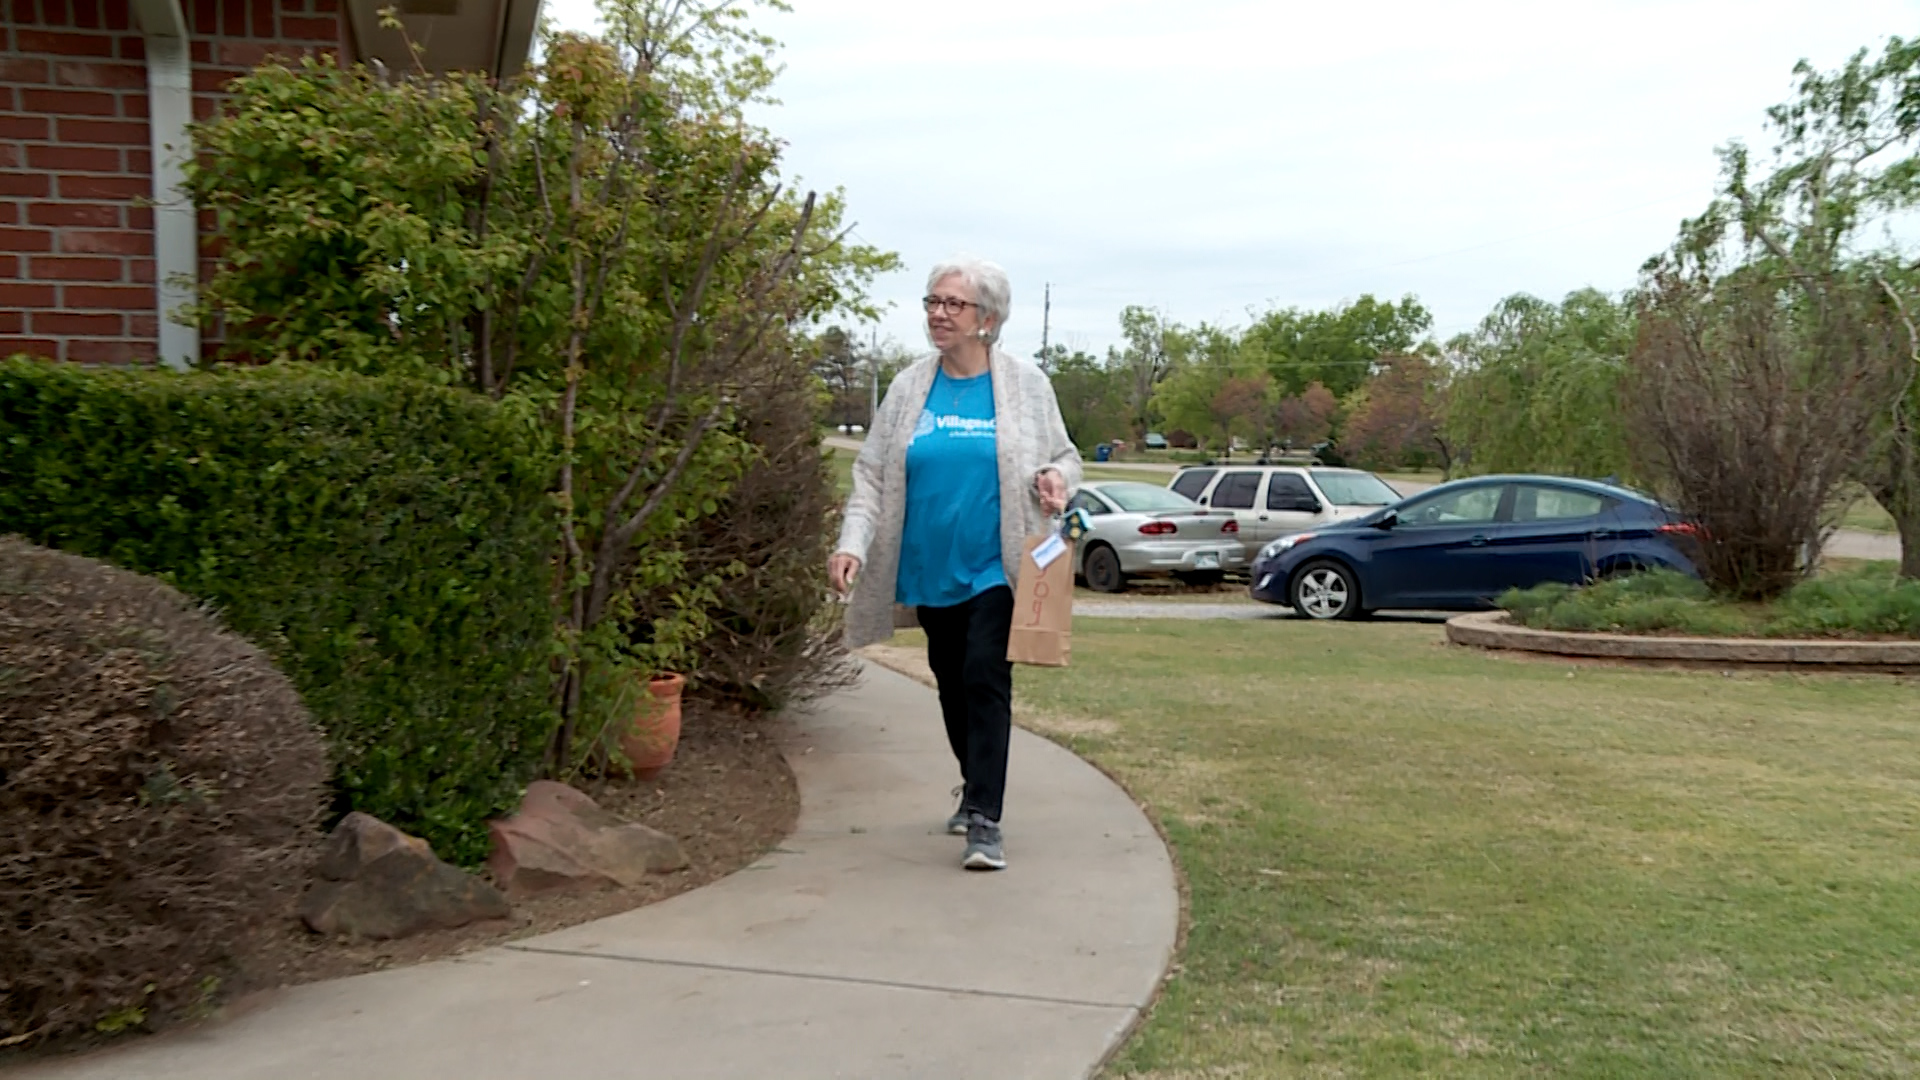 VillagesOKC volunteer makes a Porch Pals delivery.